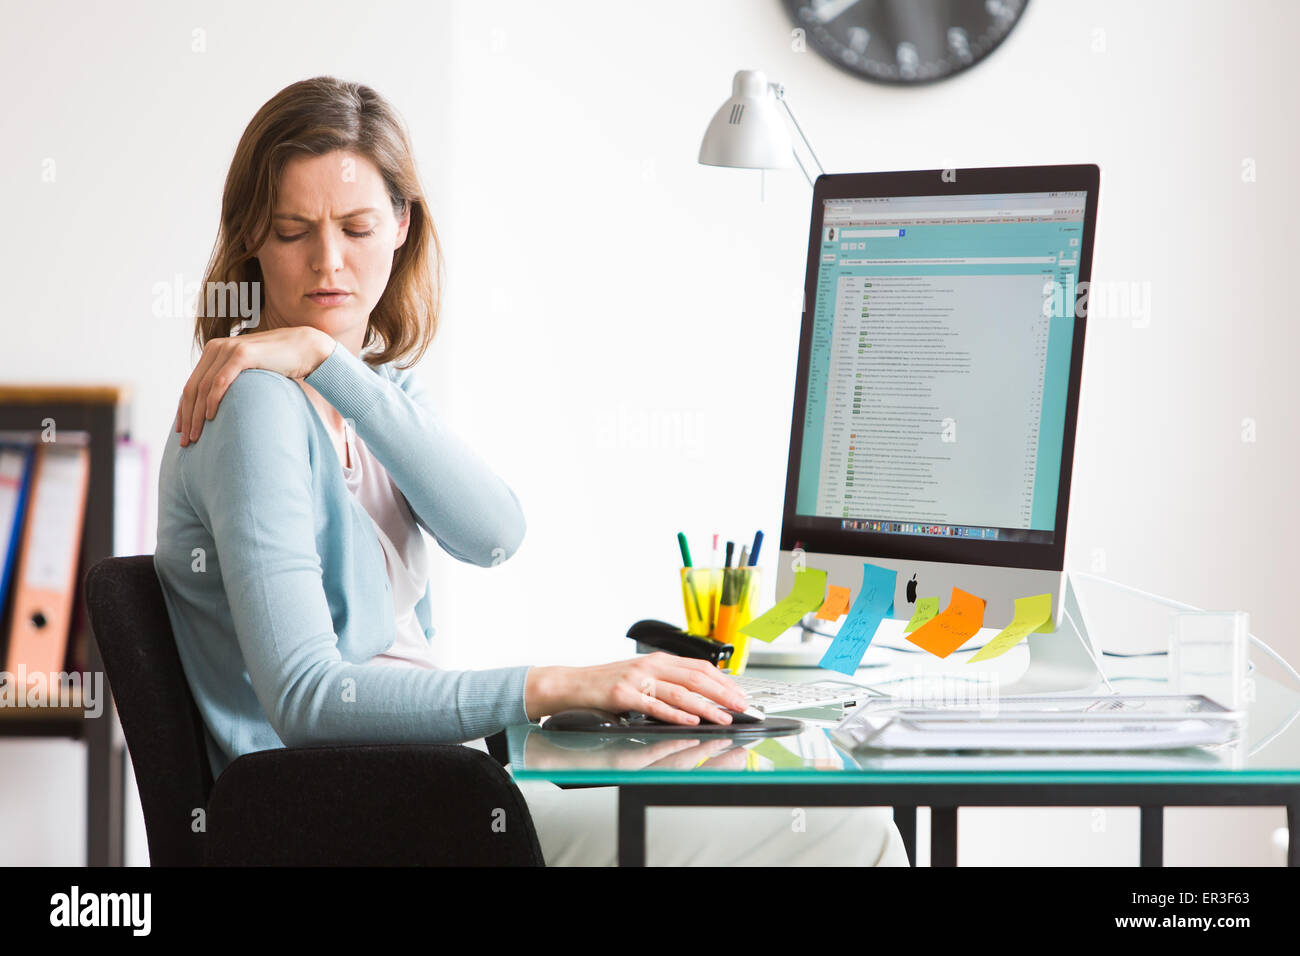 Woman at work suffering from shoulder pain. Stock Photo